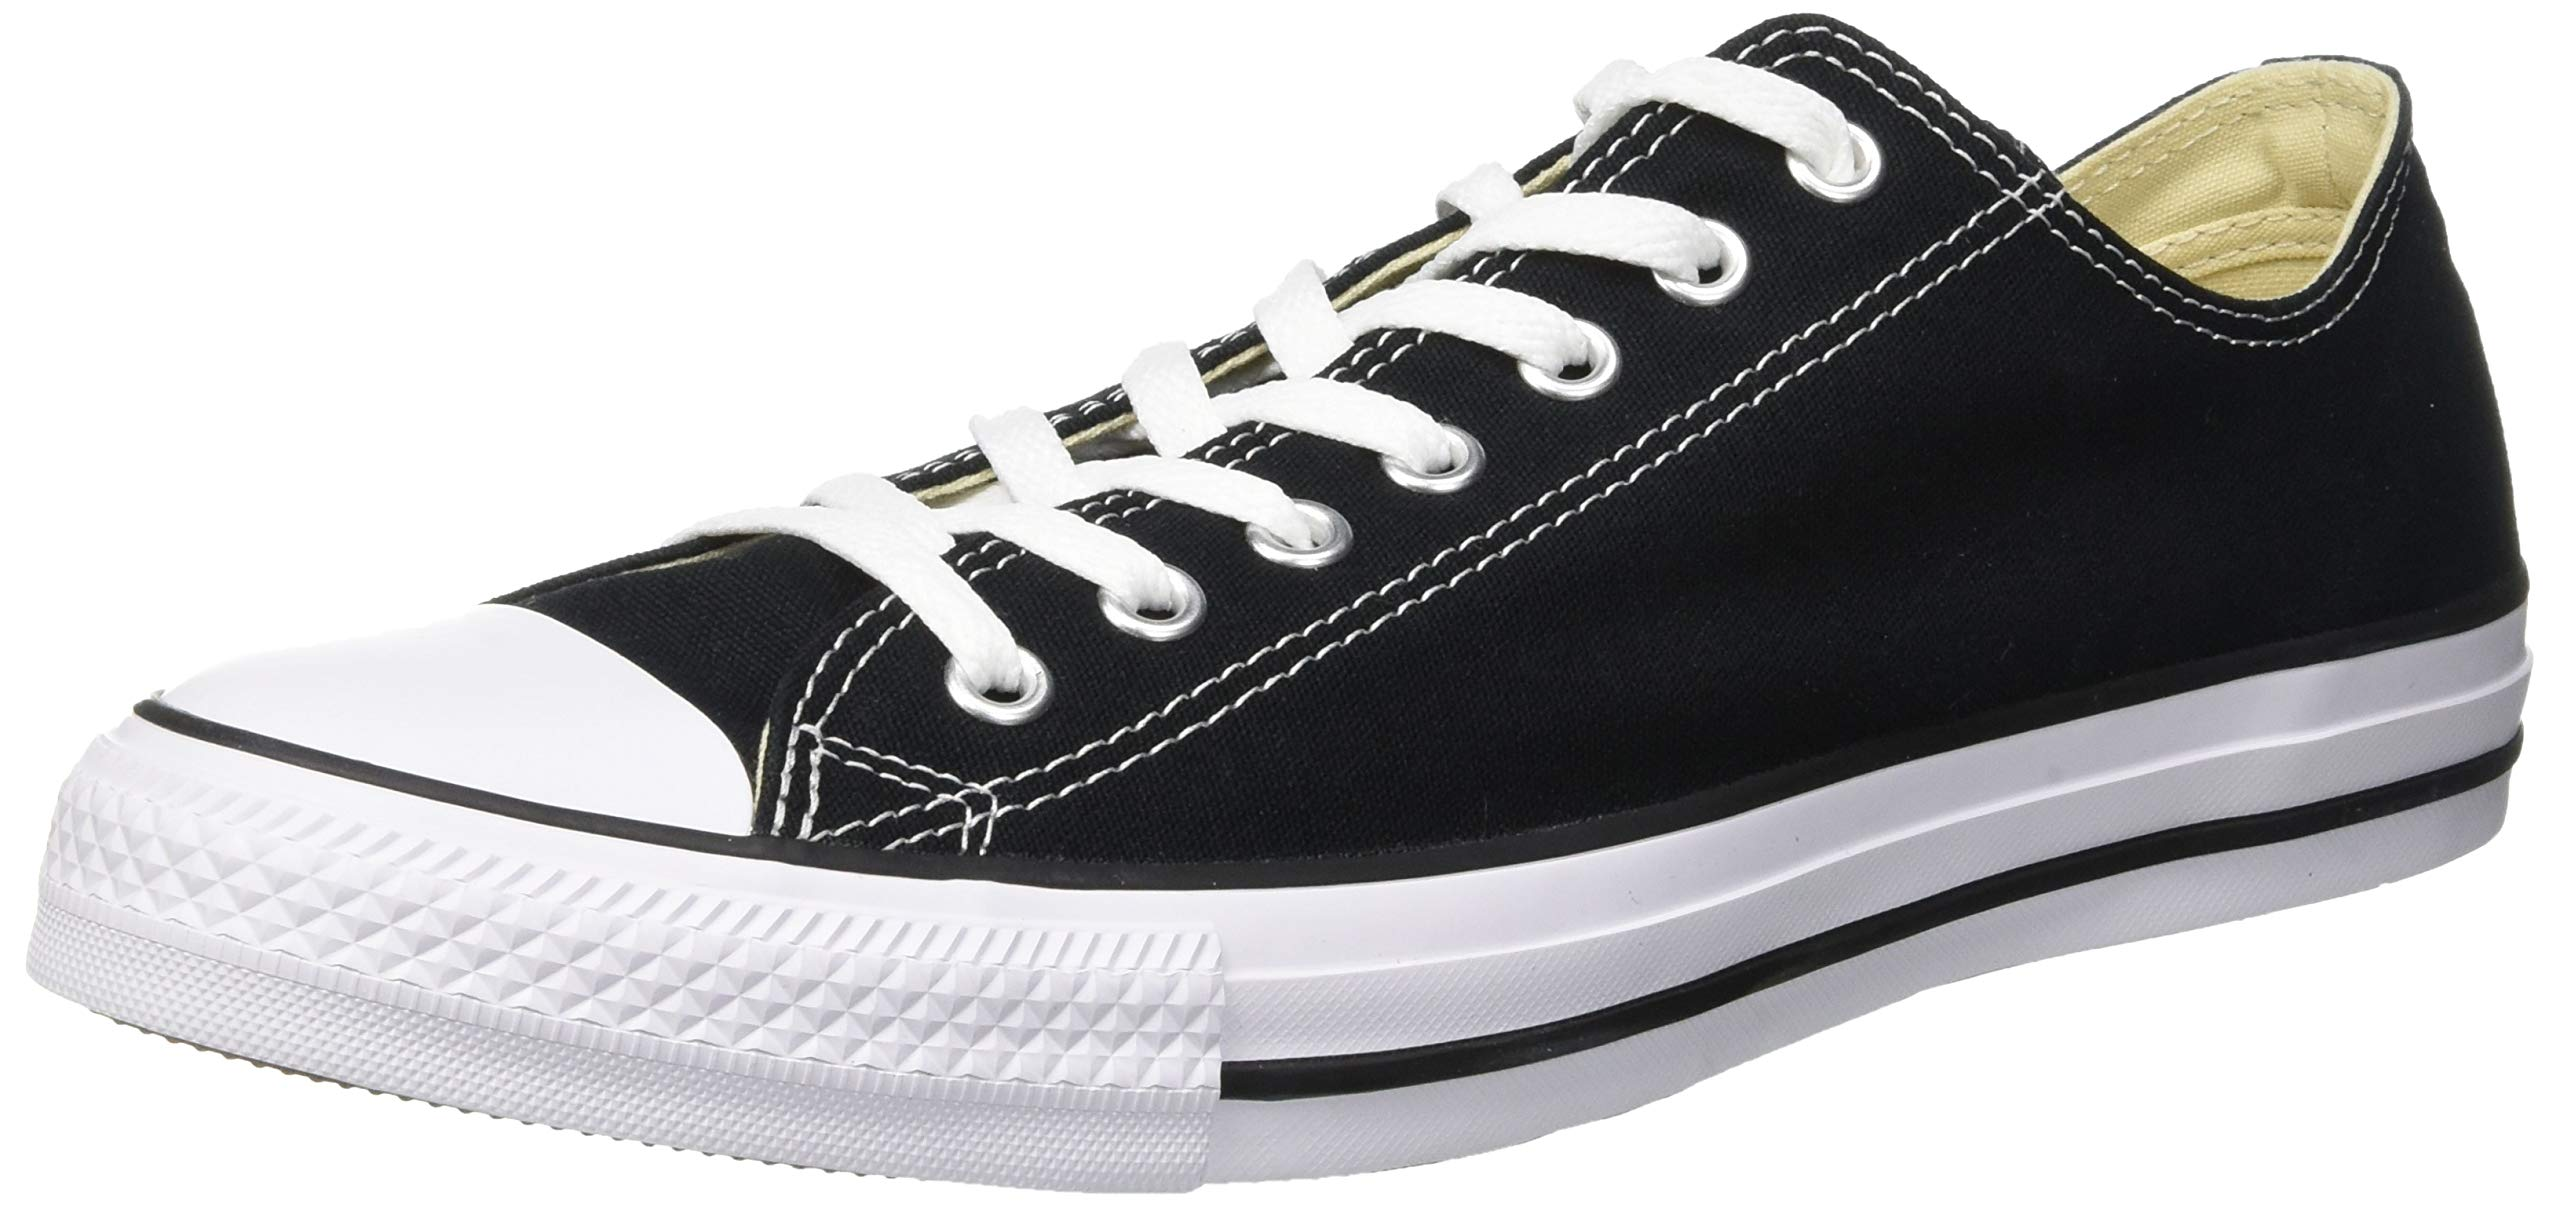 converse shoes on amazon